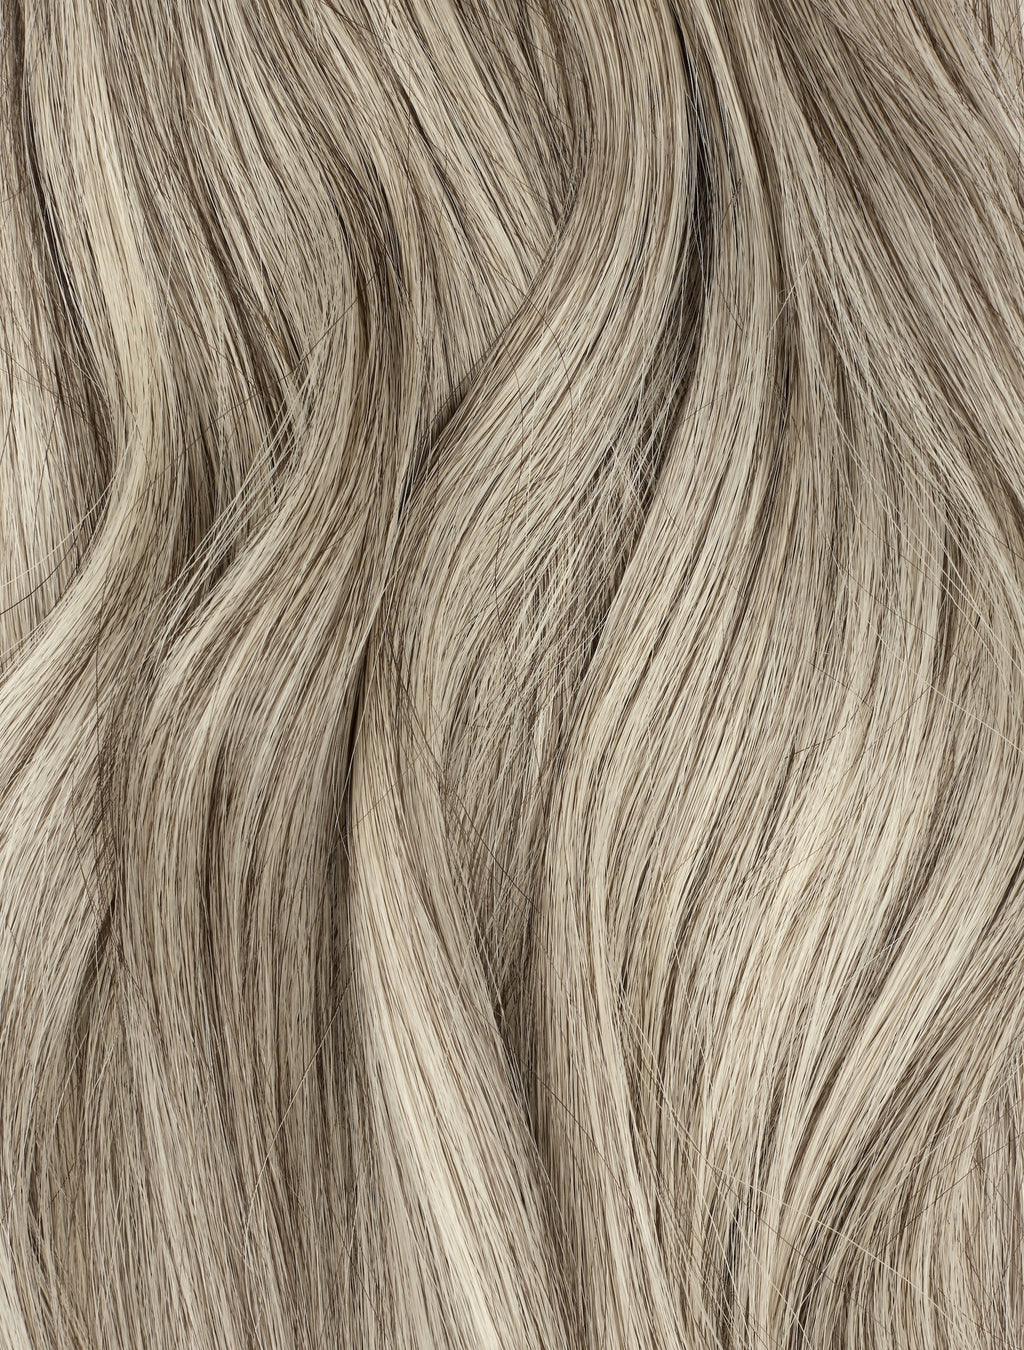 "Highlight - (Dark Brown #2 / White Blonde #60B) 20"" Invisible Tapes (Pre-Order, Ships Nov)"